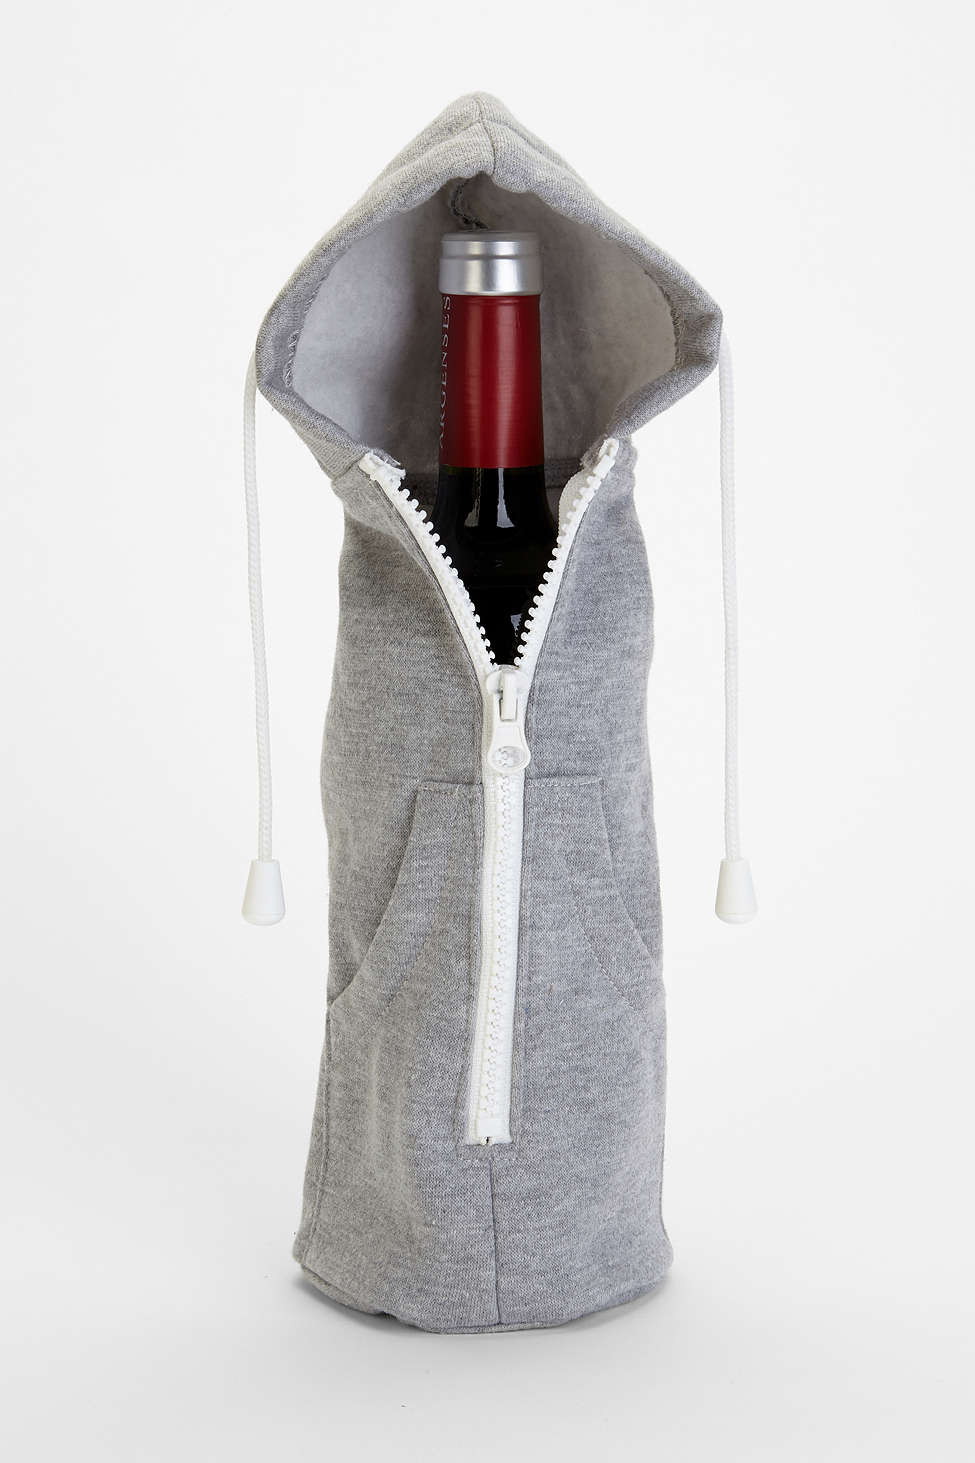 Urban Outfitters Zip it Up Wine Bottle Hoodie - $20